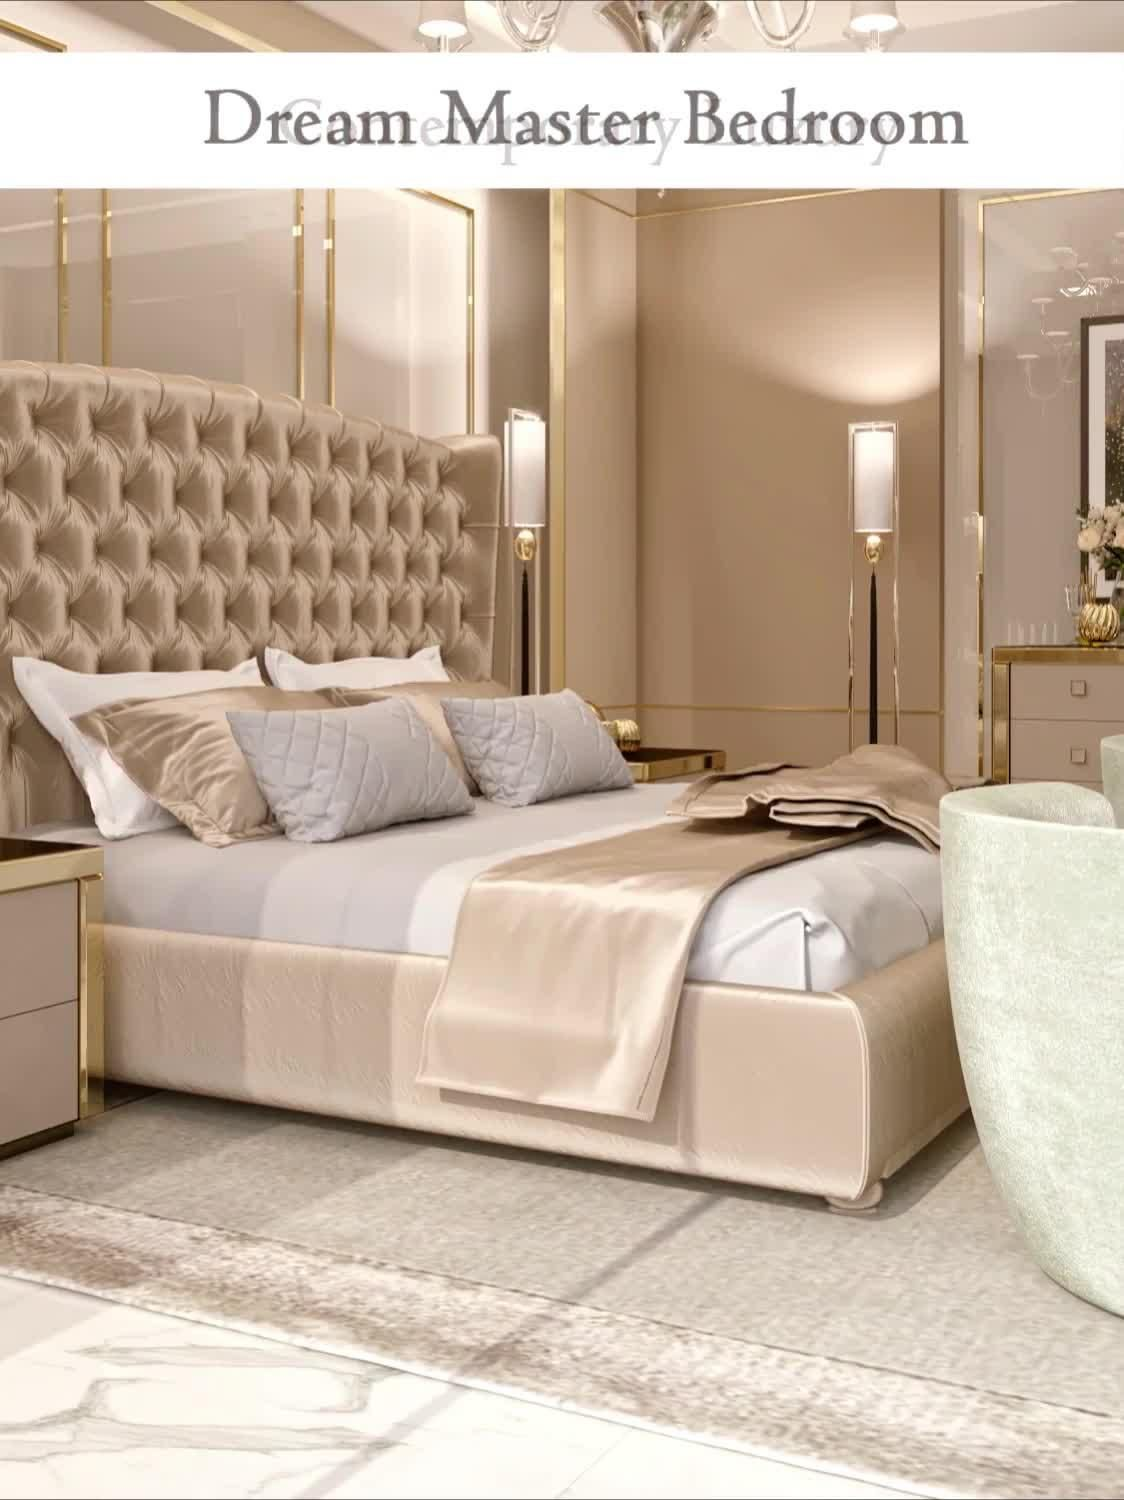 Modern style luxury master bedroom interior video by Fancy house